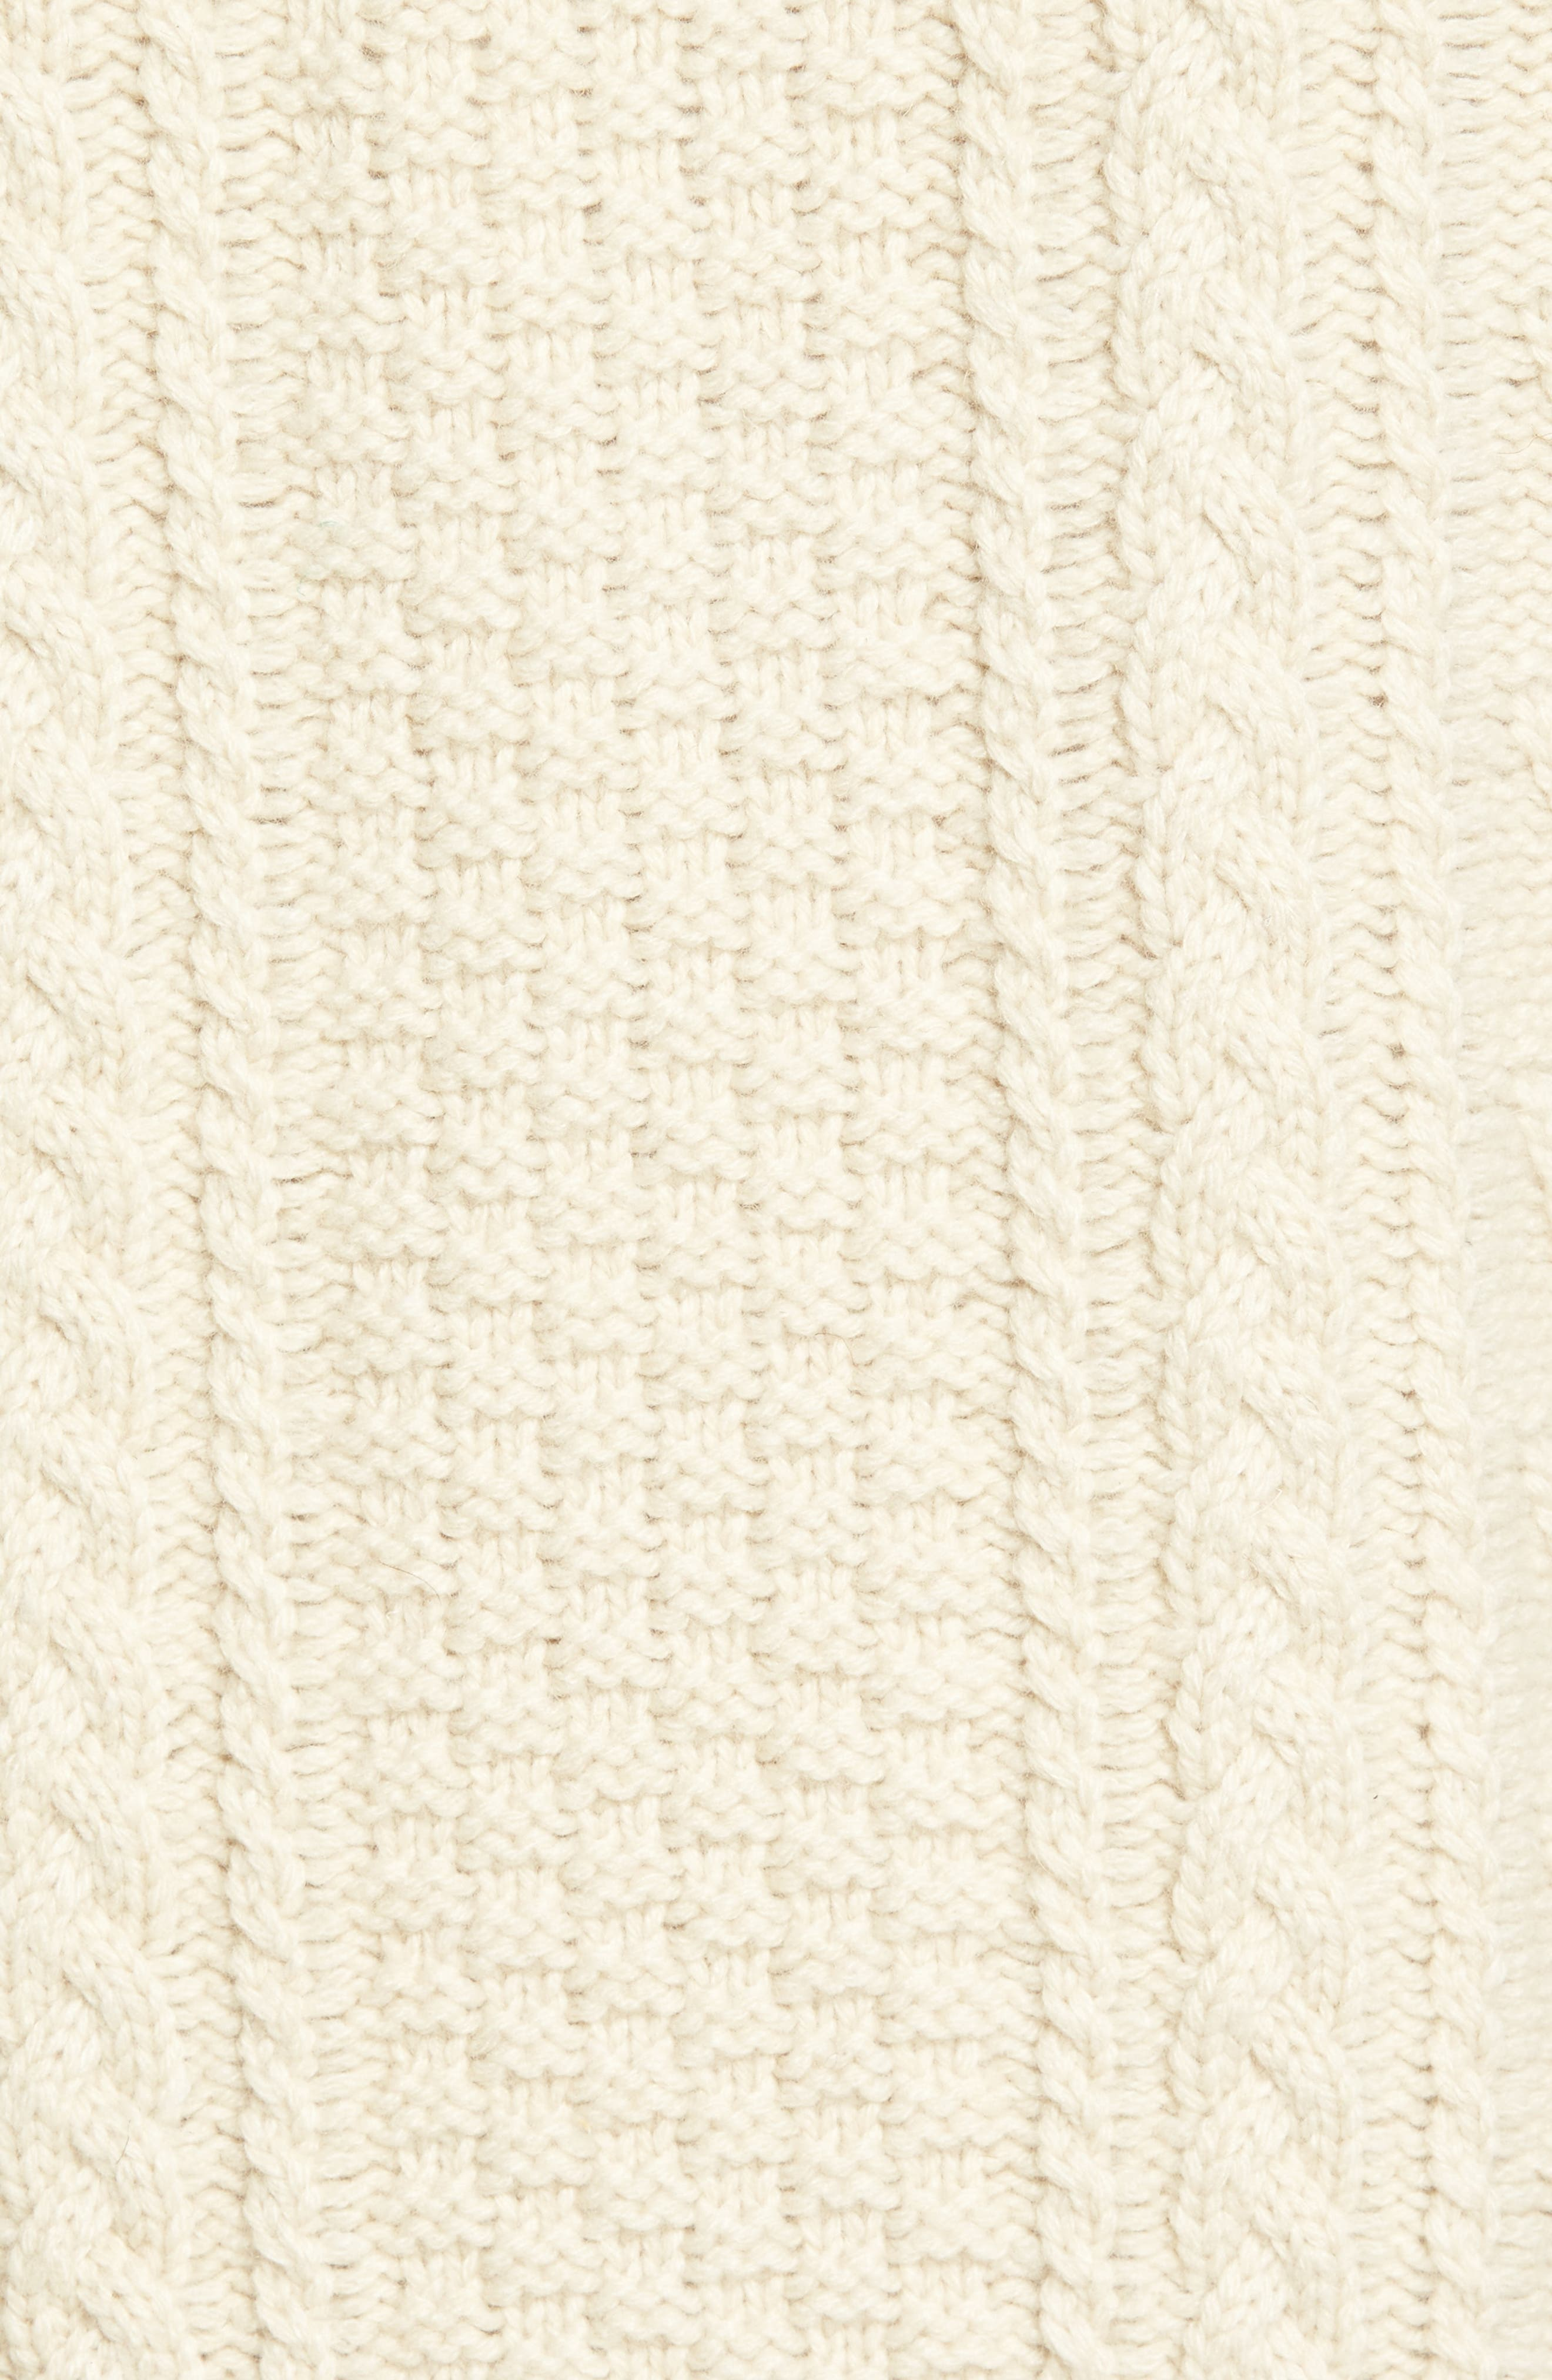 Fisherman Knit Wool Blend Sweater,                             Alternate thumbnail 5, color,                             OFF WHITE